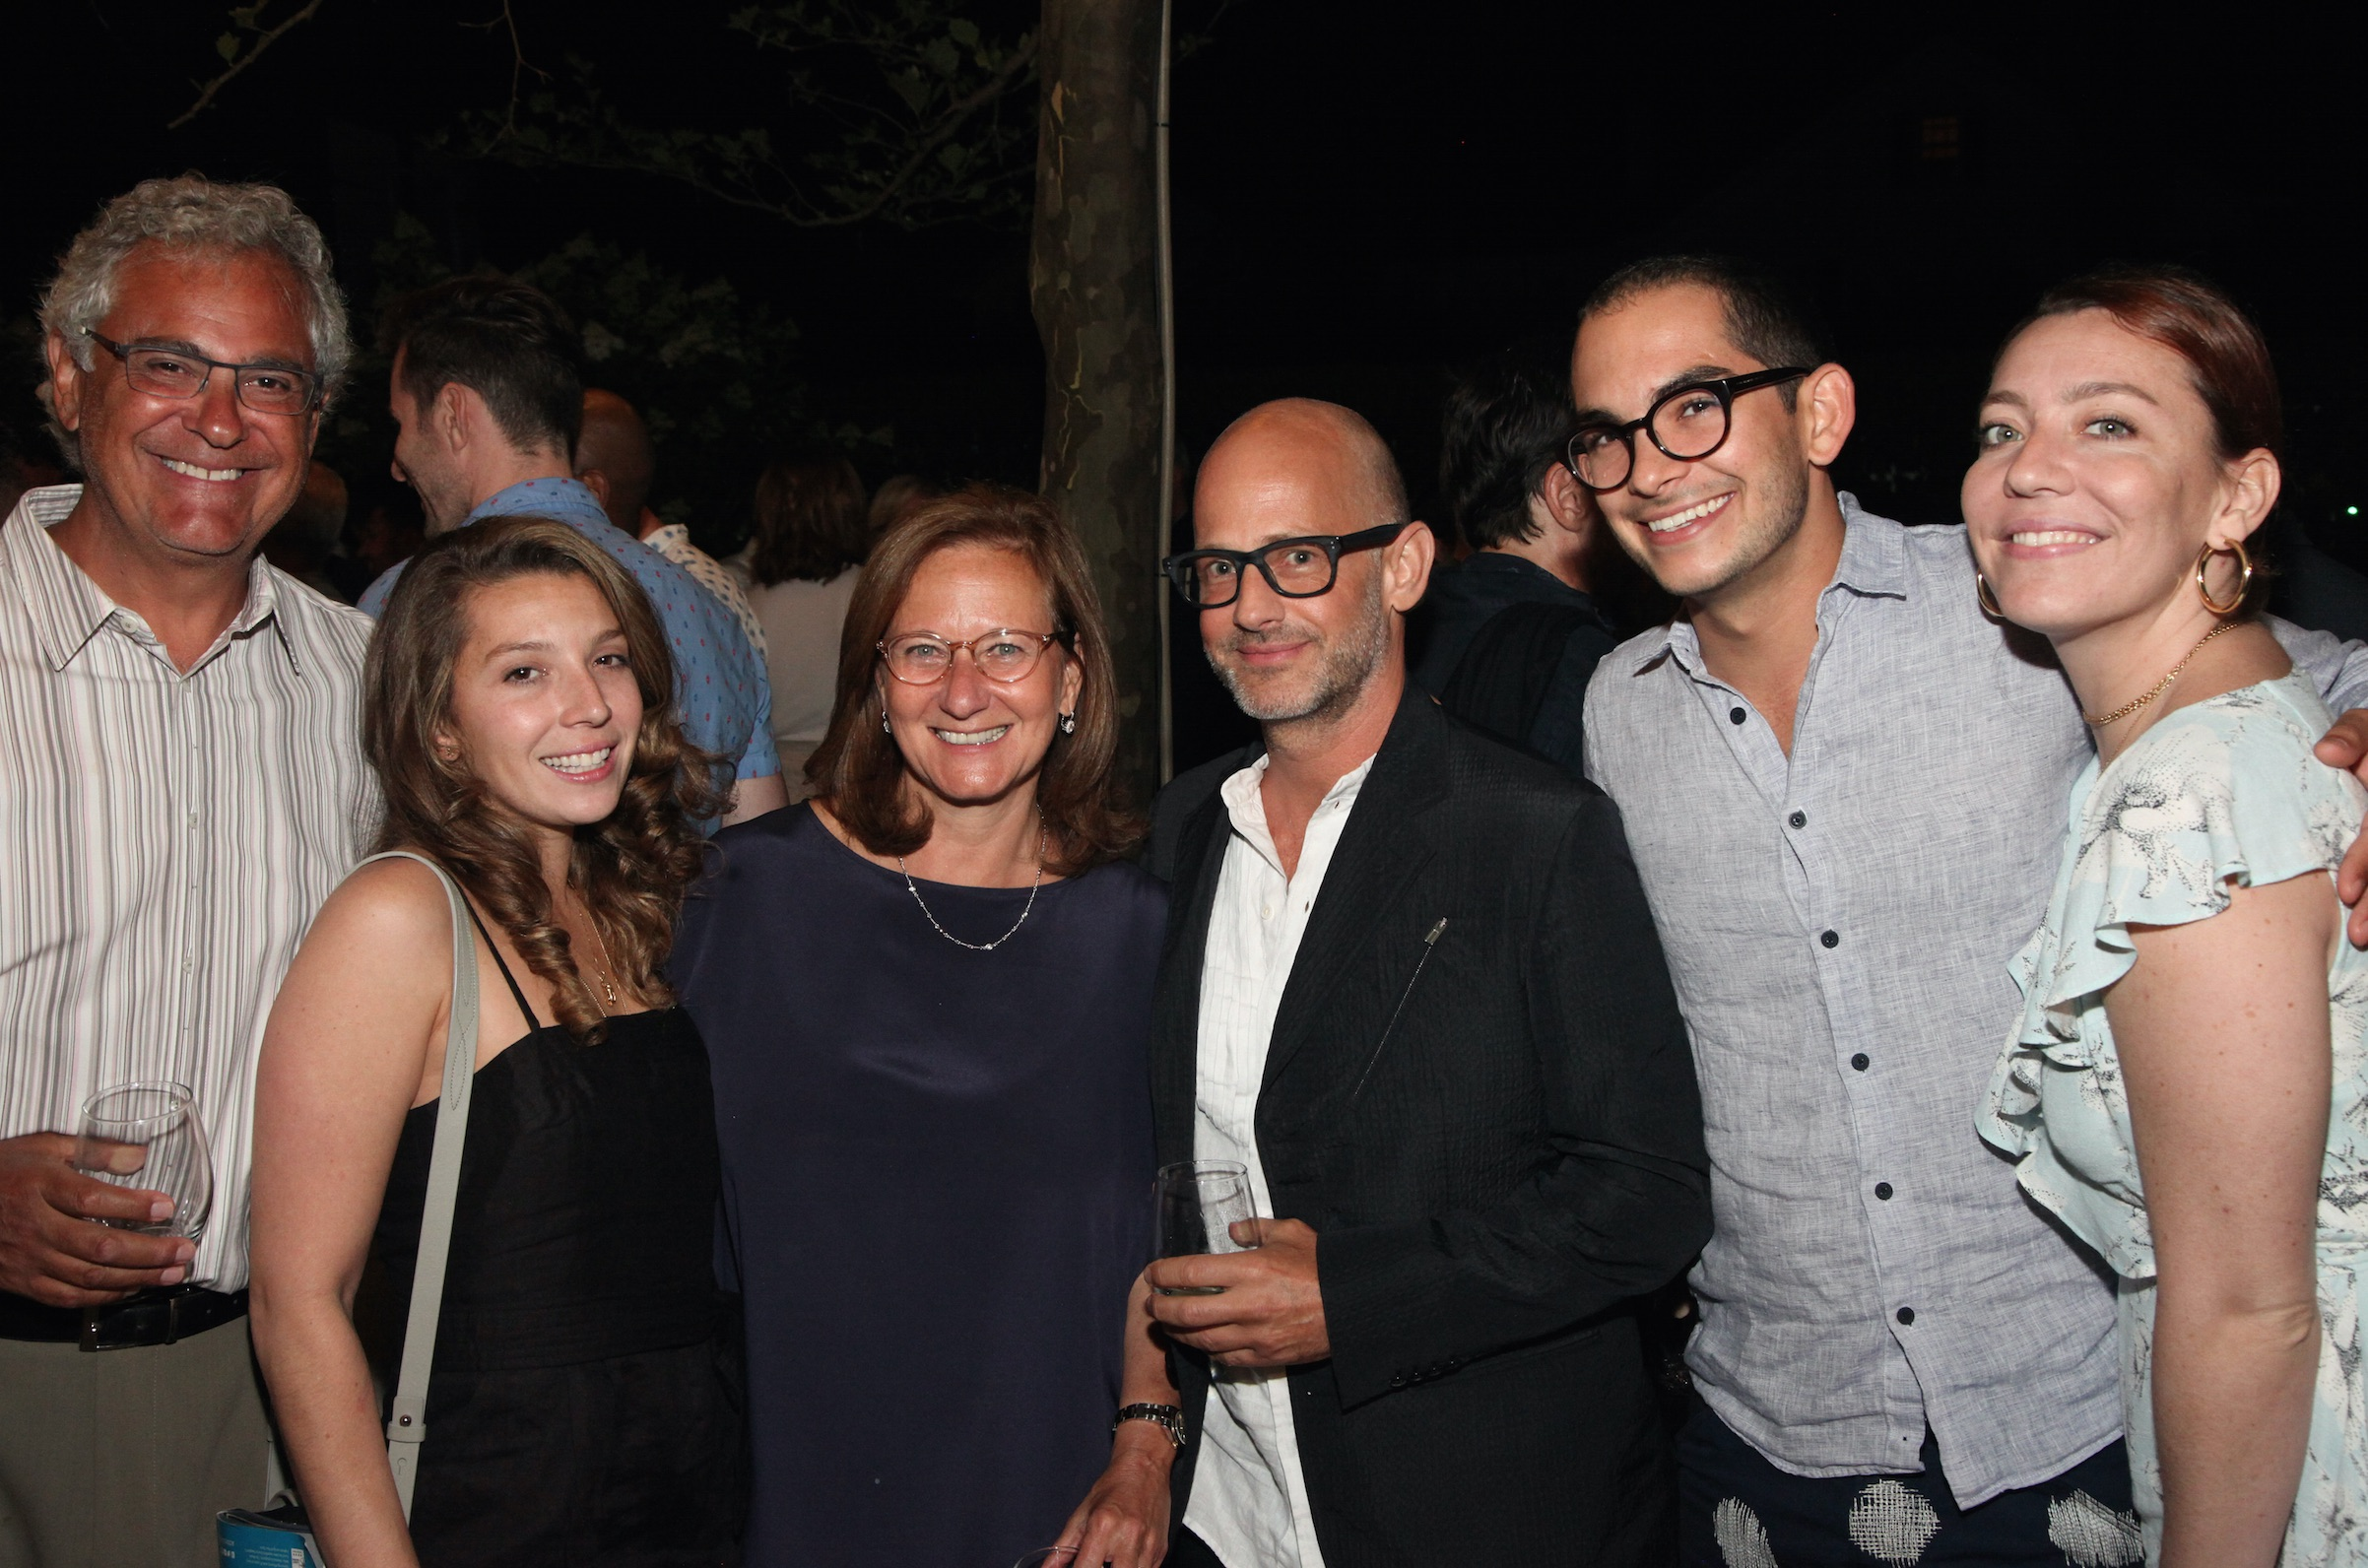 Actors Fund COO Barbara Davis (third from left) with husband Tim Davis, Victoria Fuentes, Moises Esquenazi, Chris Melendez and Monica Fuentes